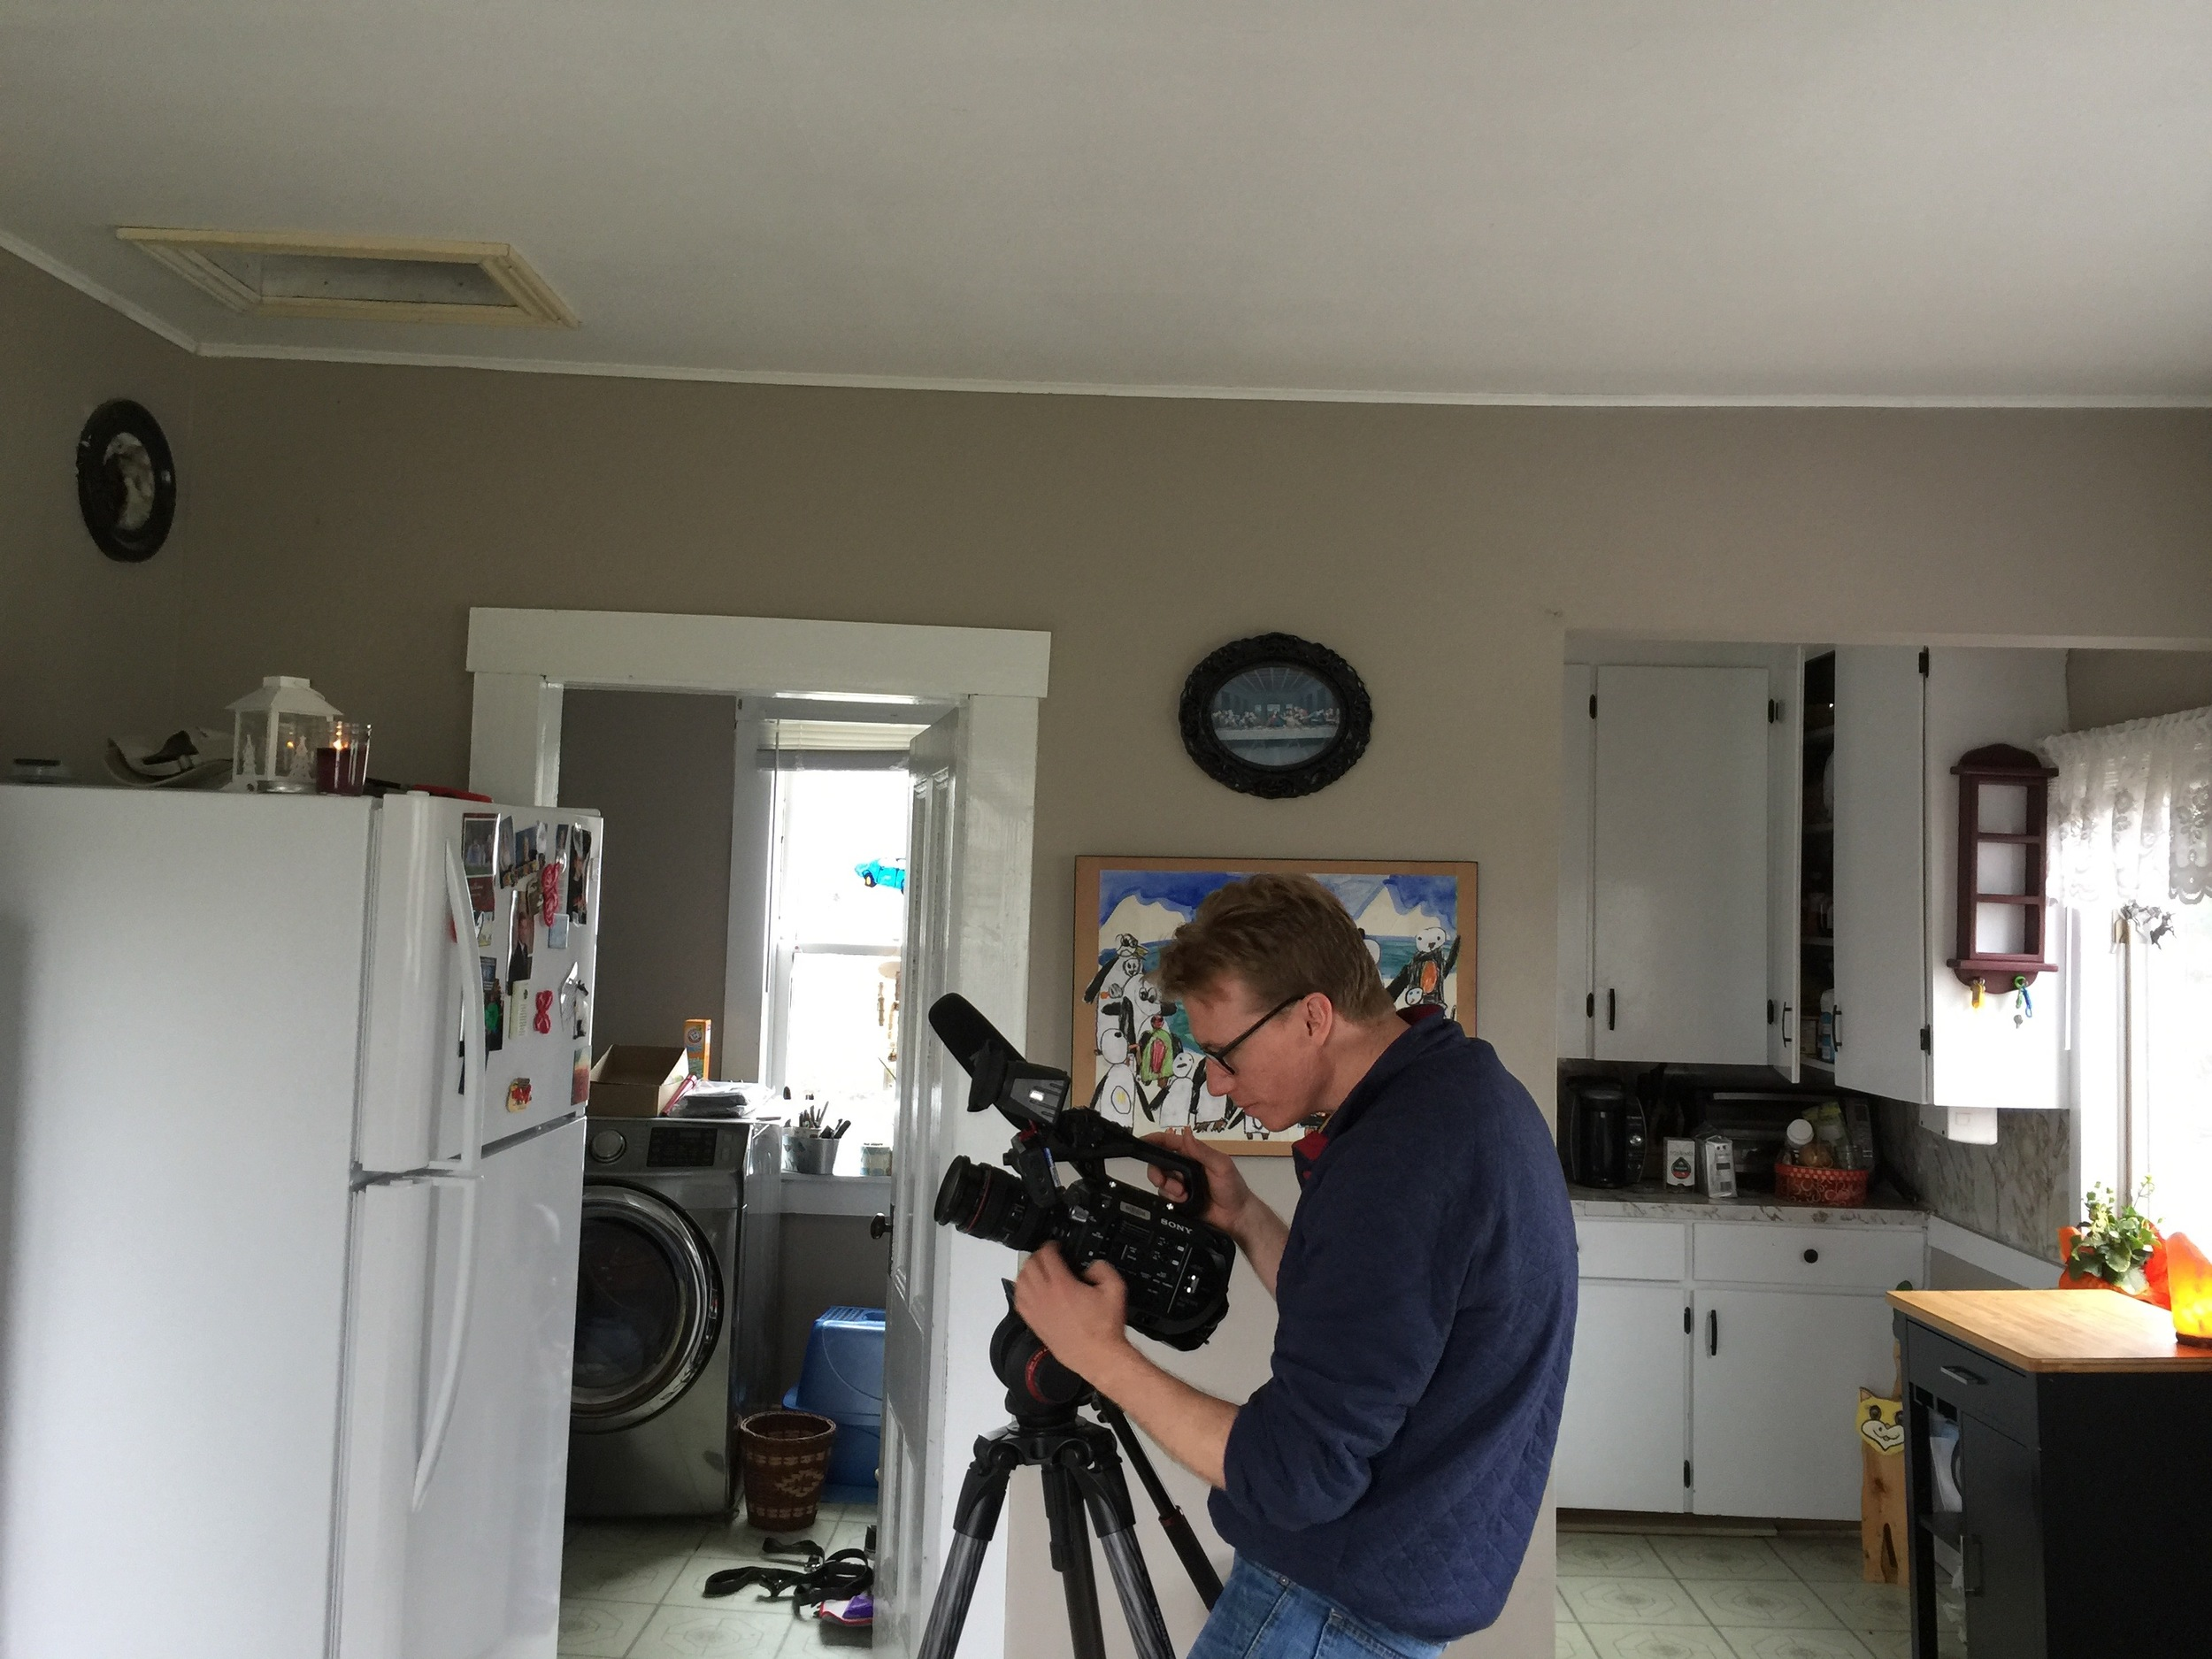 filming at the house